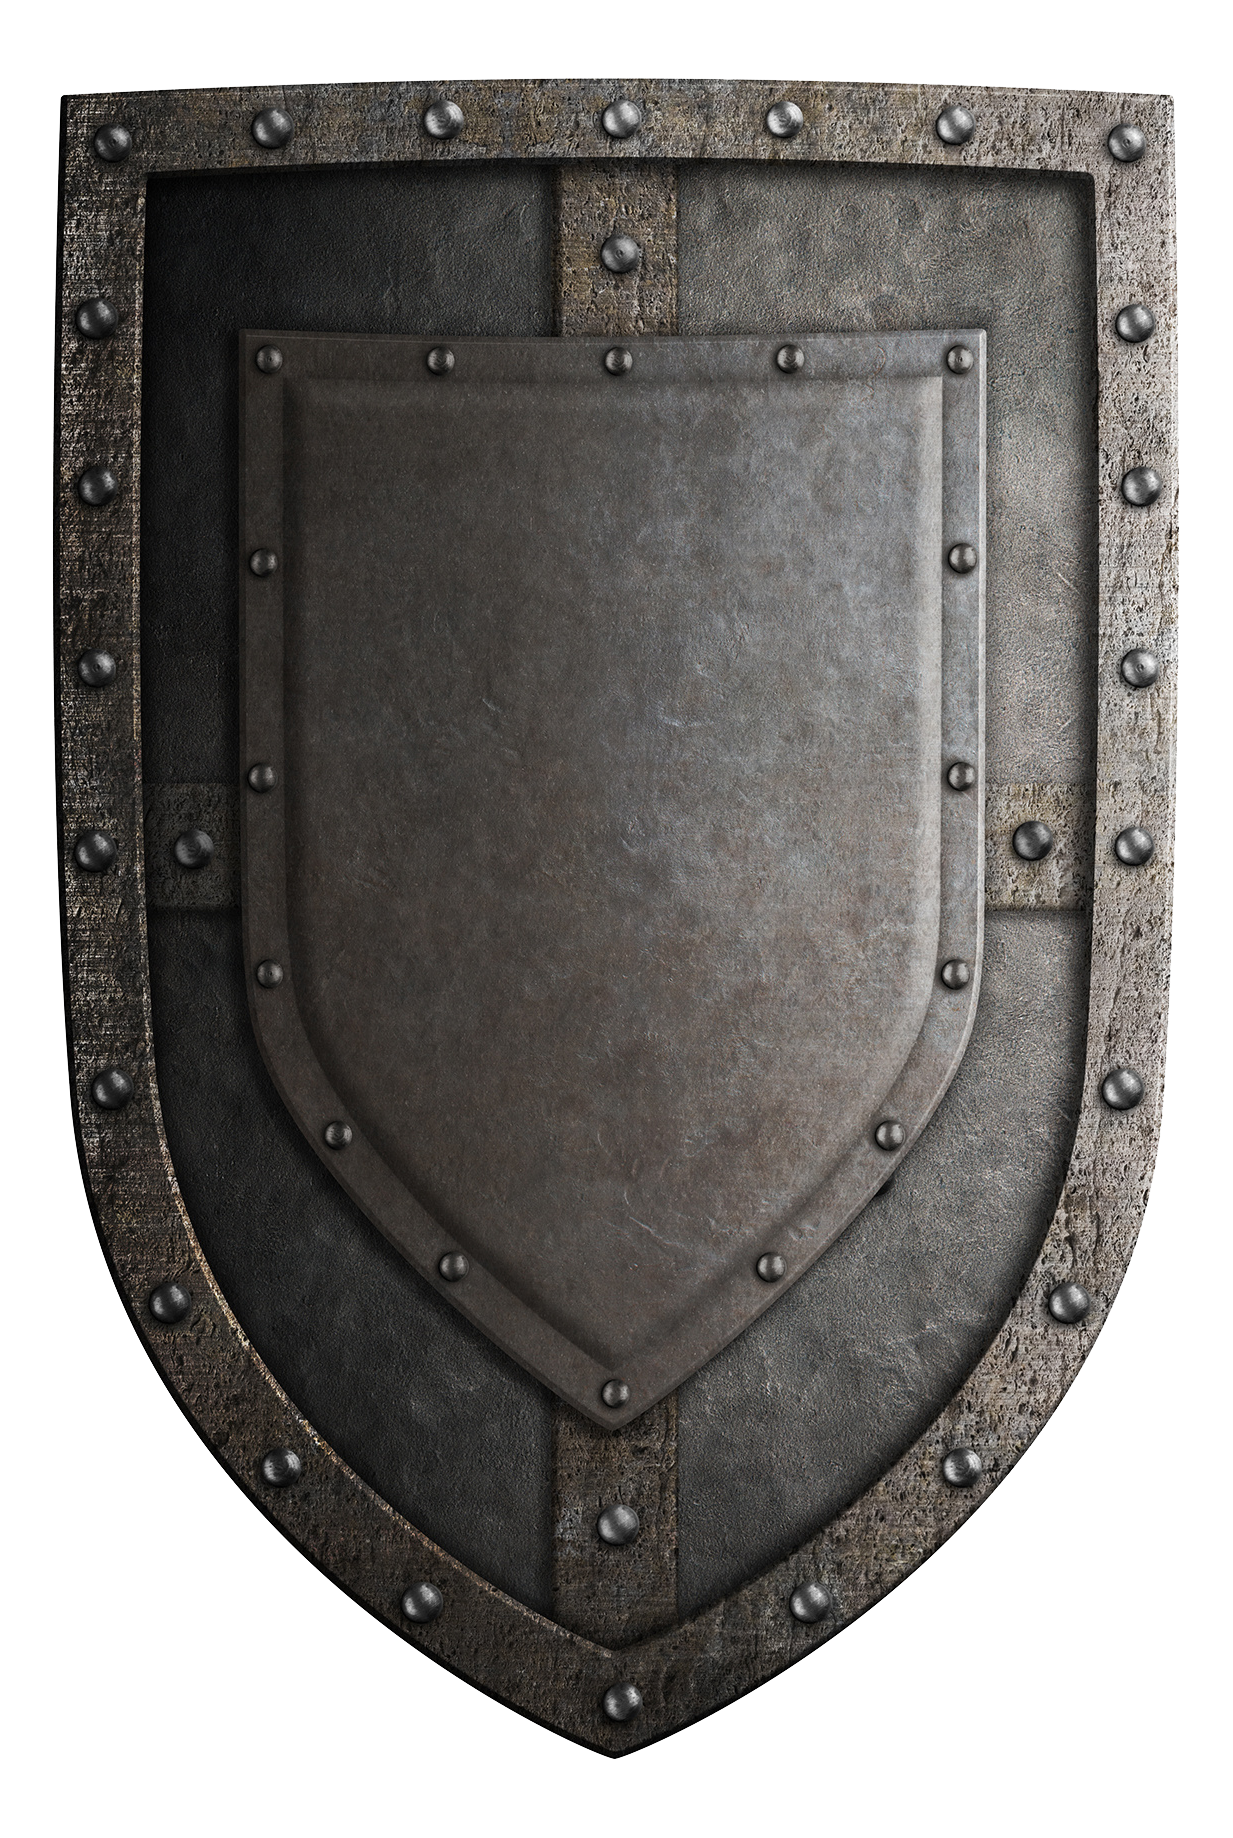 Crusades Shield Metal Ages Middle Angle PNG Image